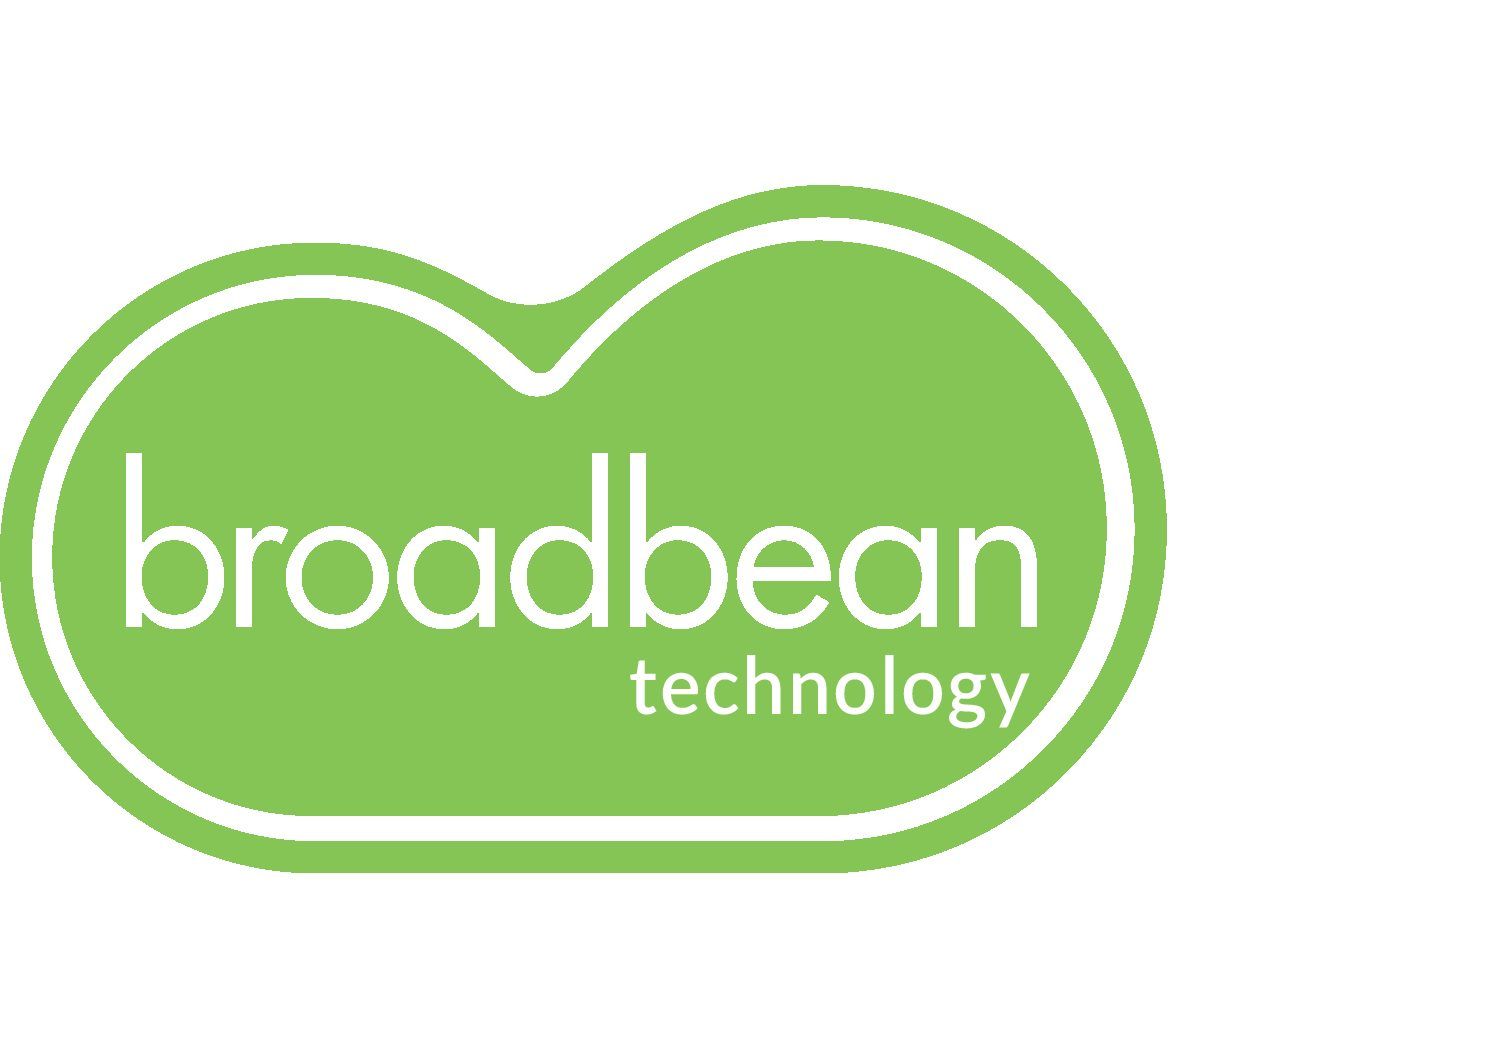 broadbean technology-withoutstrap-lime-rgb